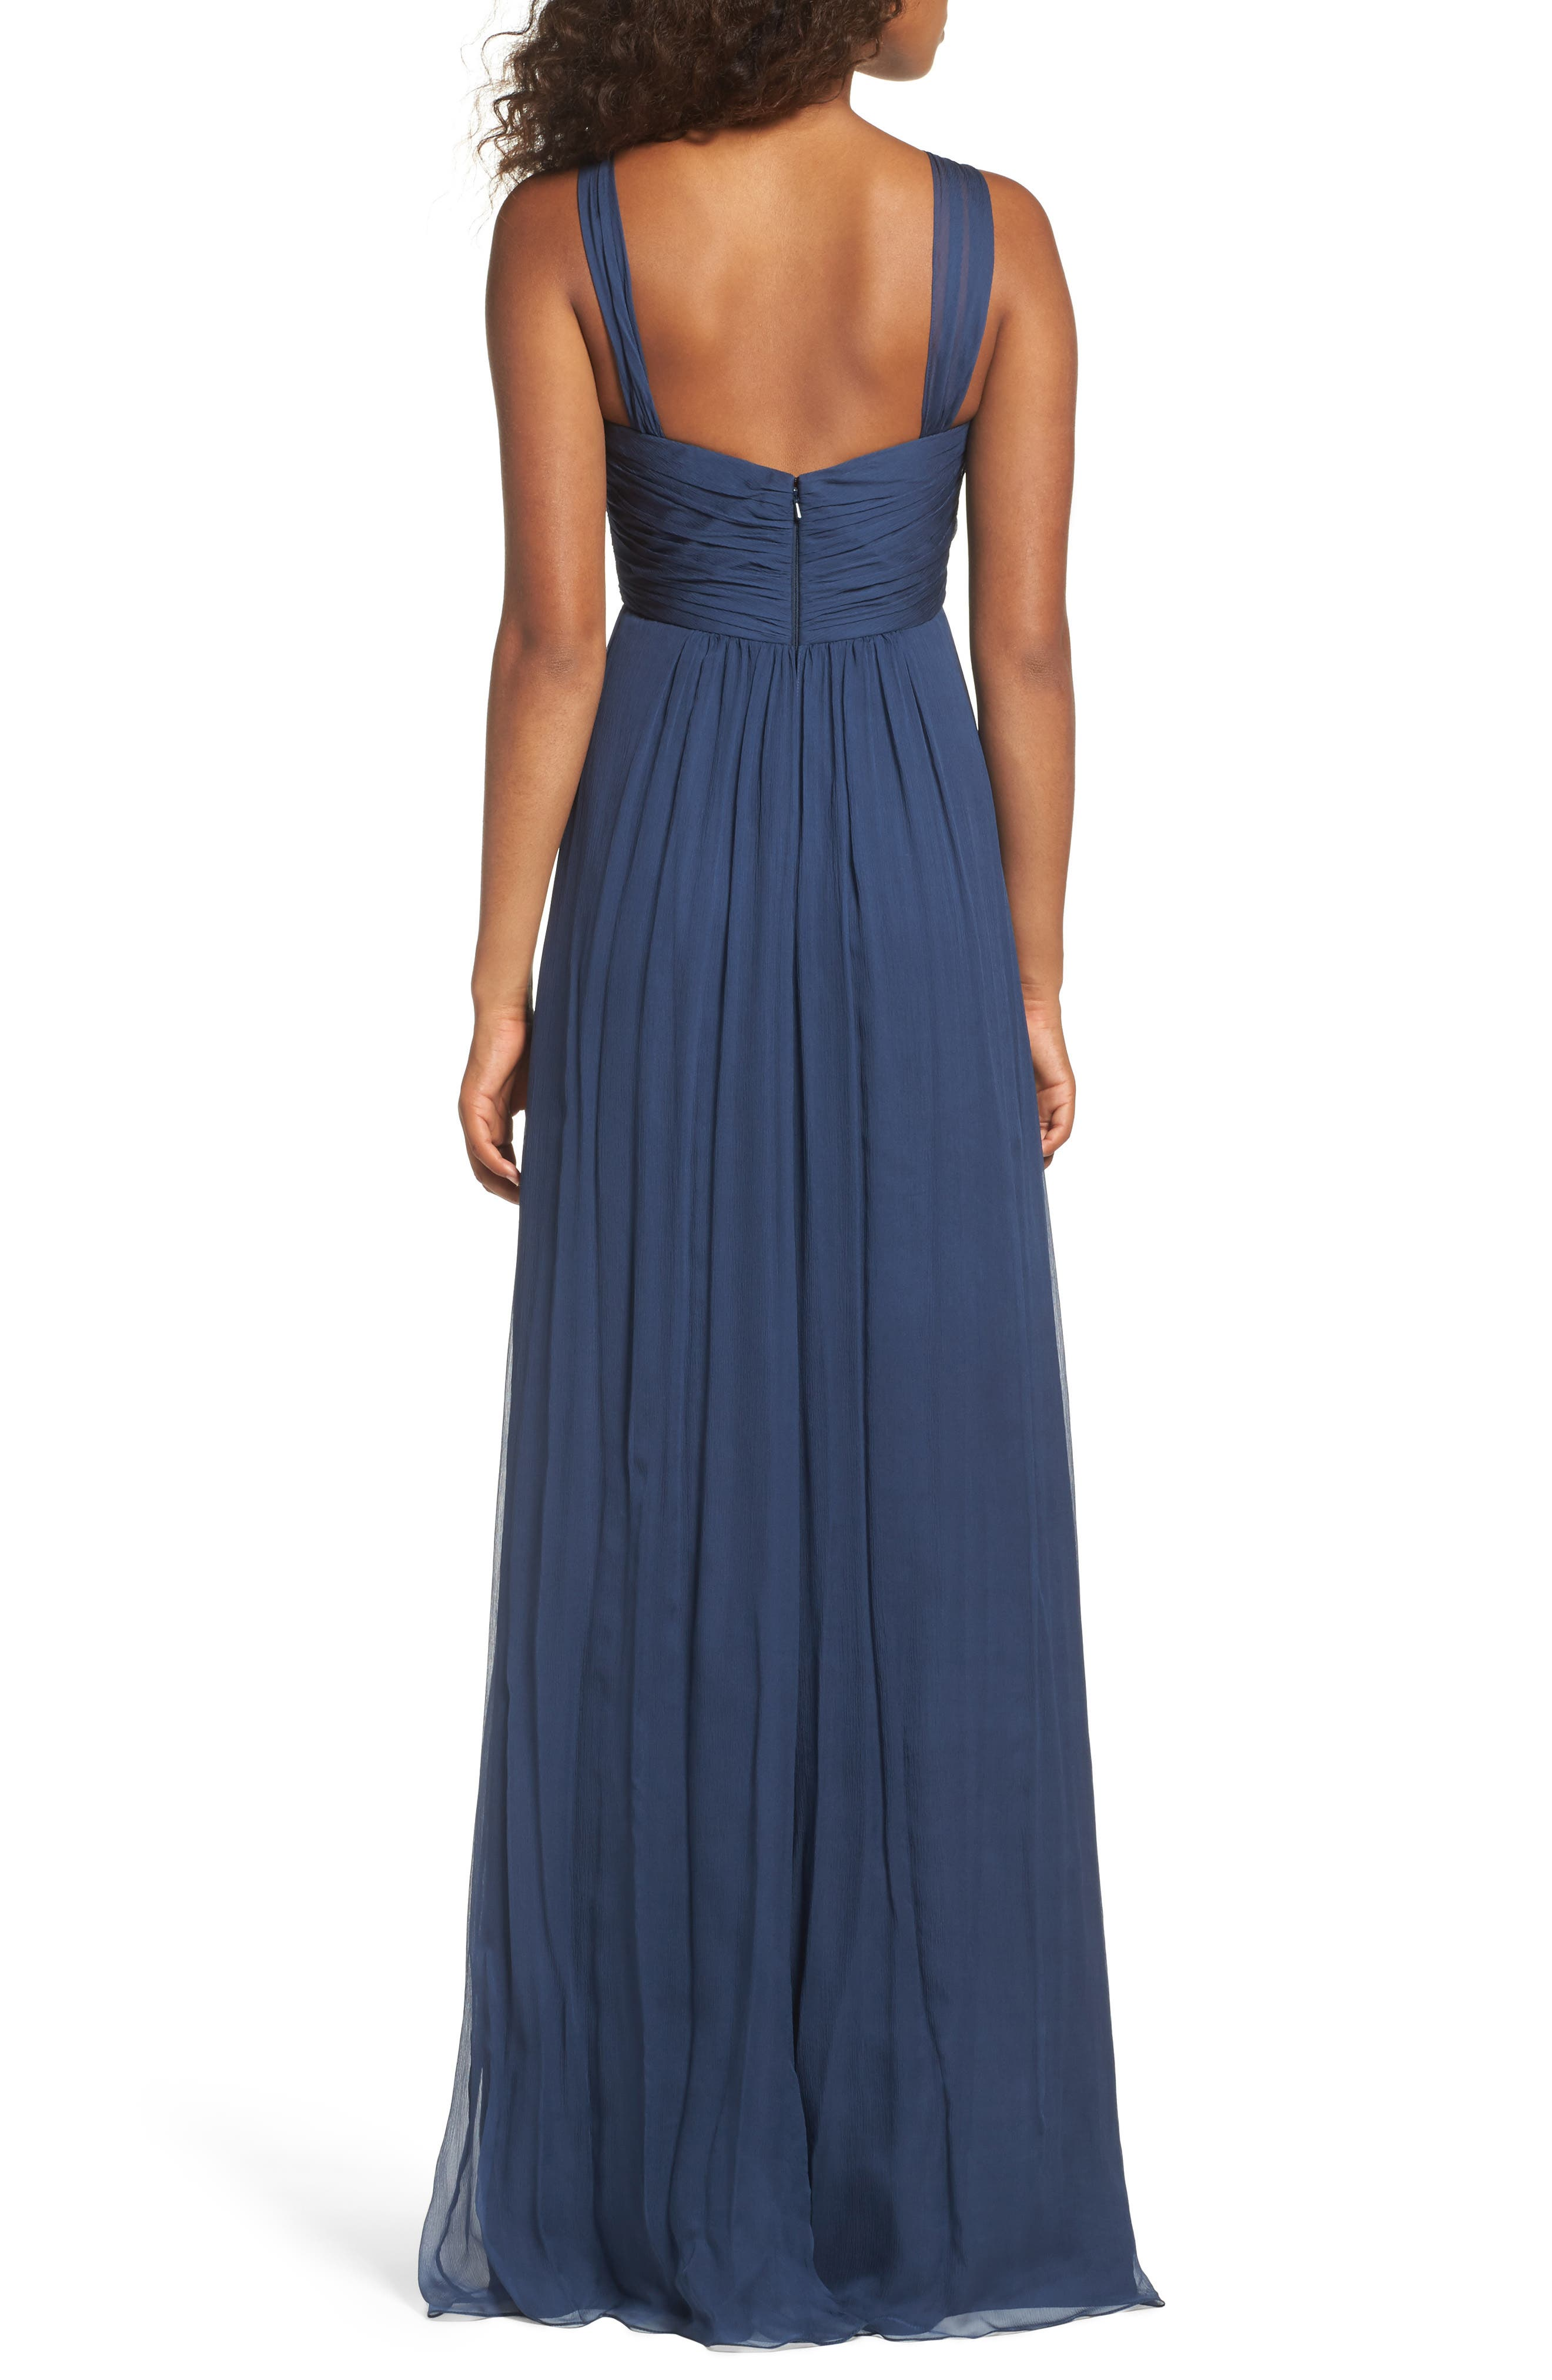 Corbin Crinkled Chiffon Empire Gown,                             Alternate thumbnail 4, color,